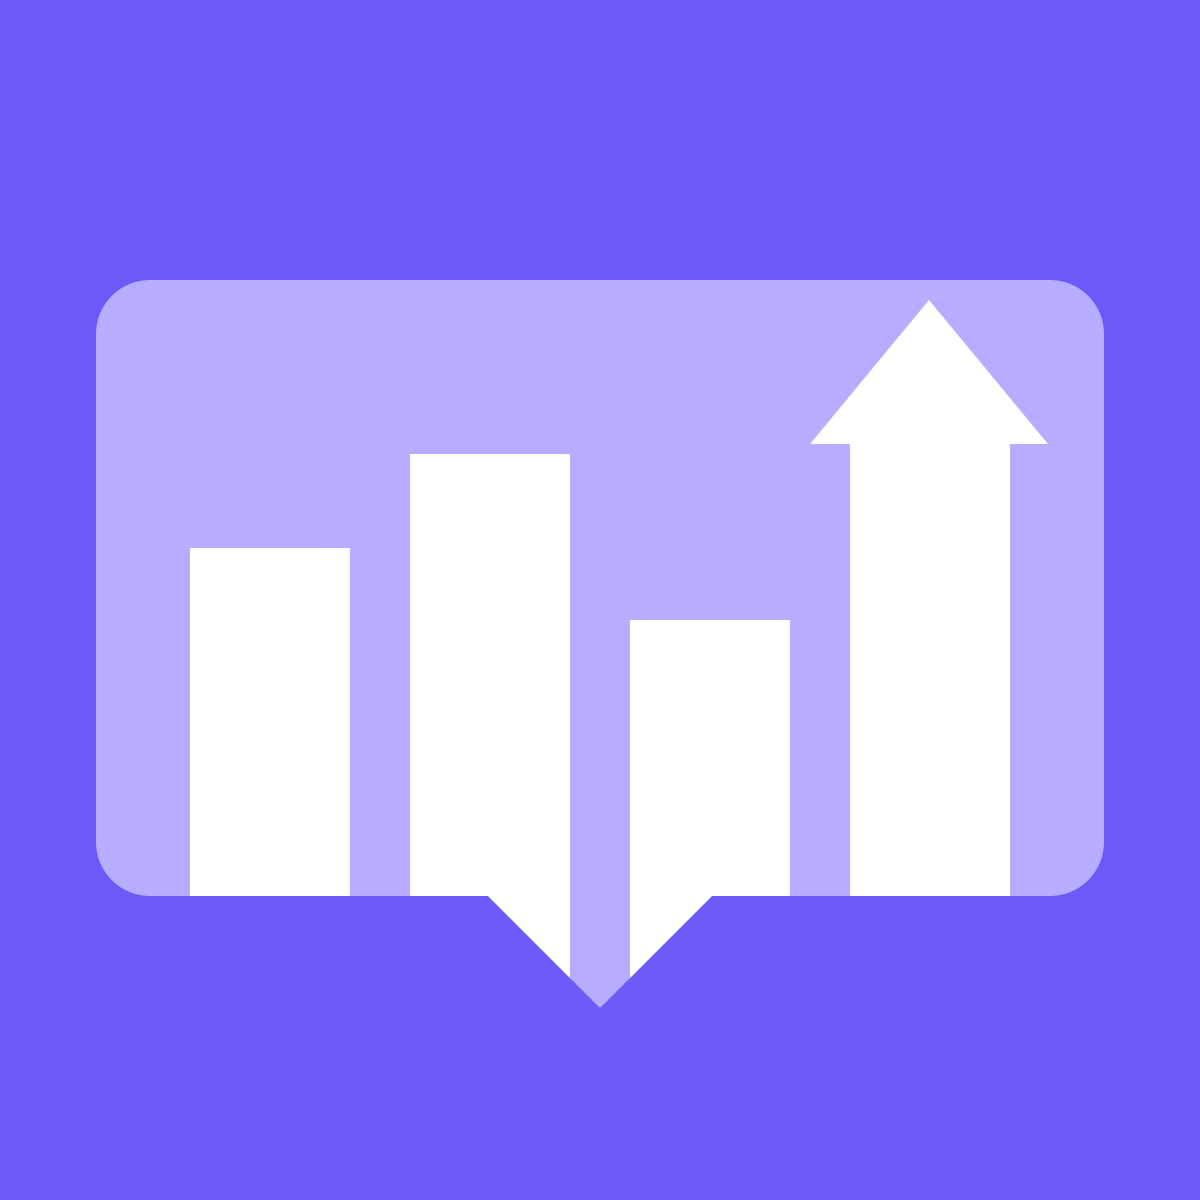 Hire Shopify Experts to integrate Advanced Reports app into a Shopify store